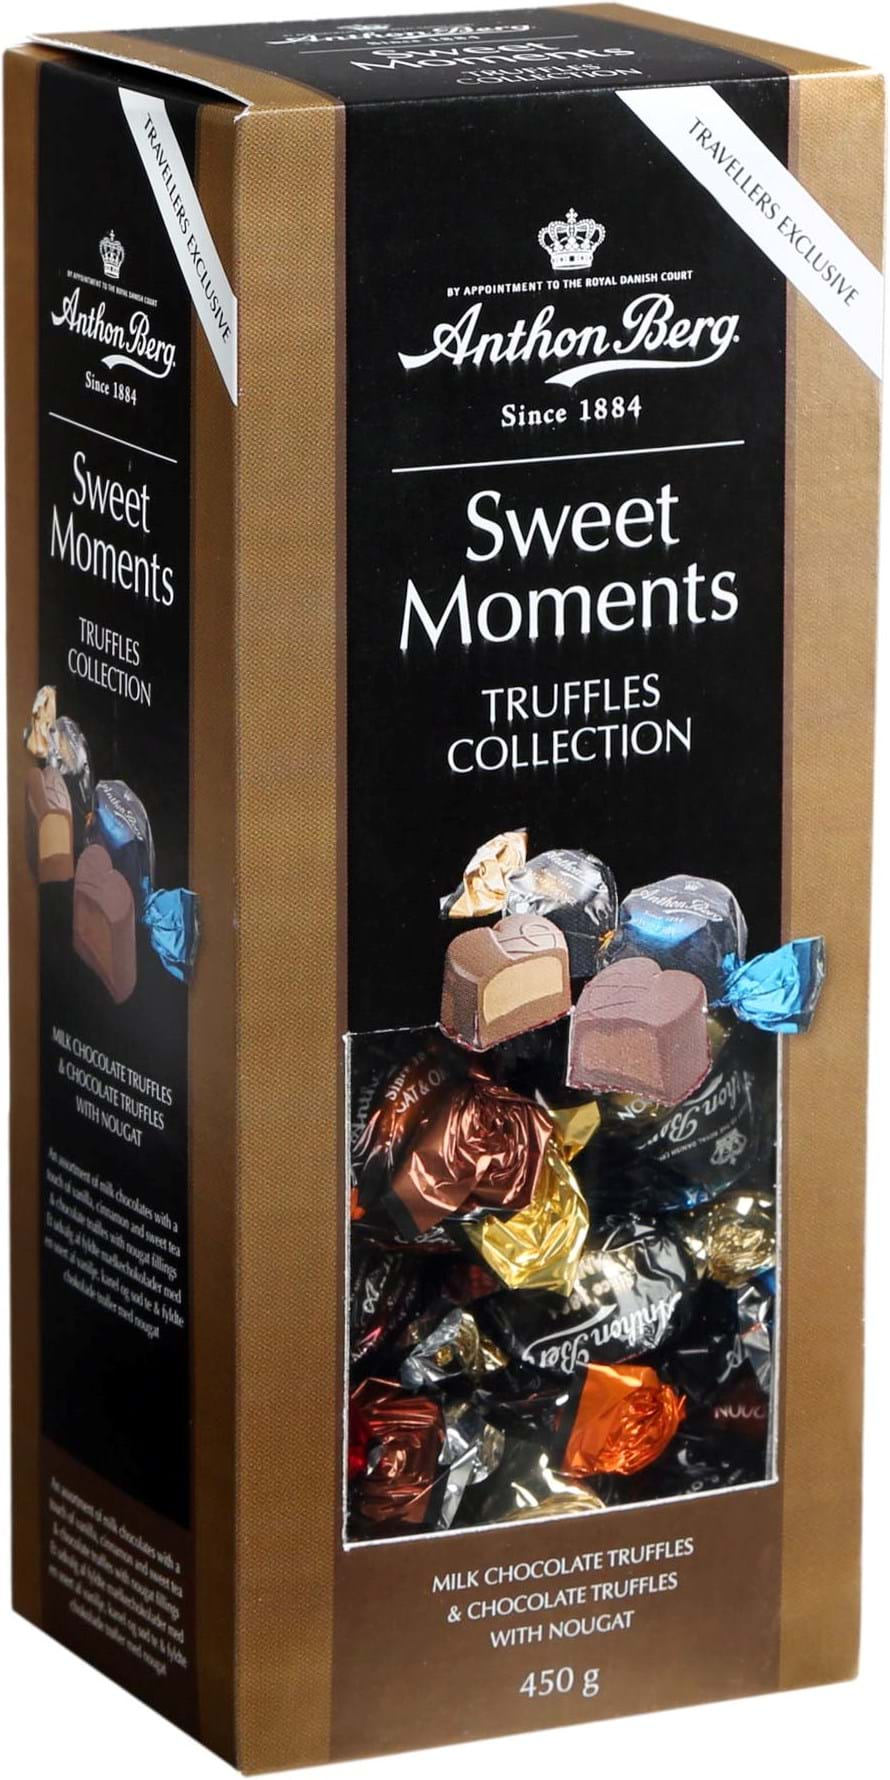 Anthon Berg Sweet Moments Truffles Collection 450g